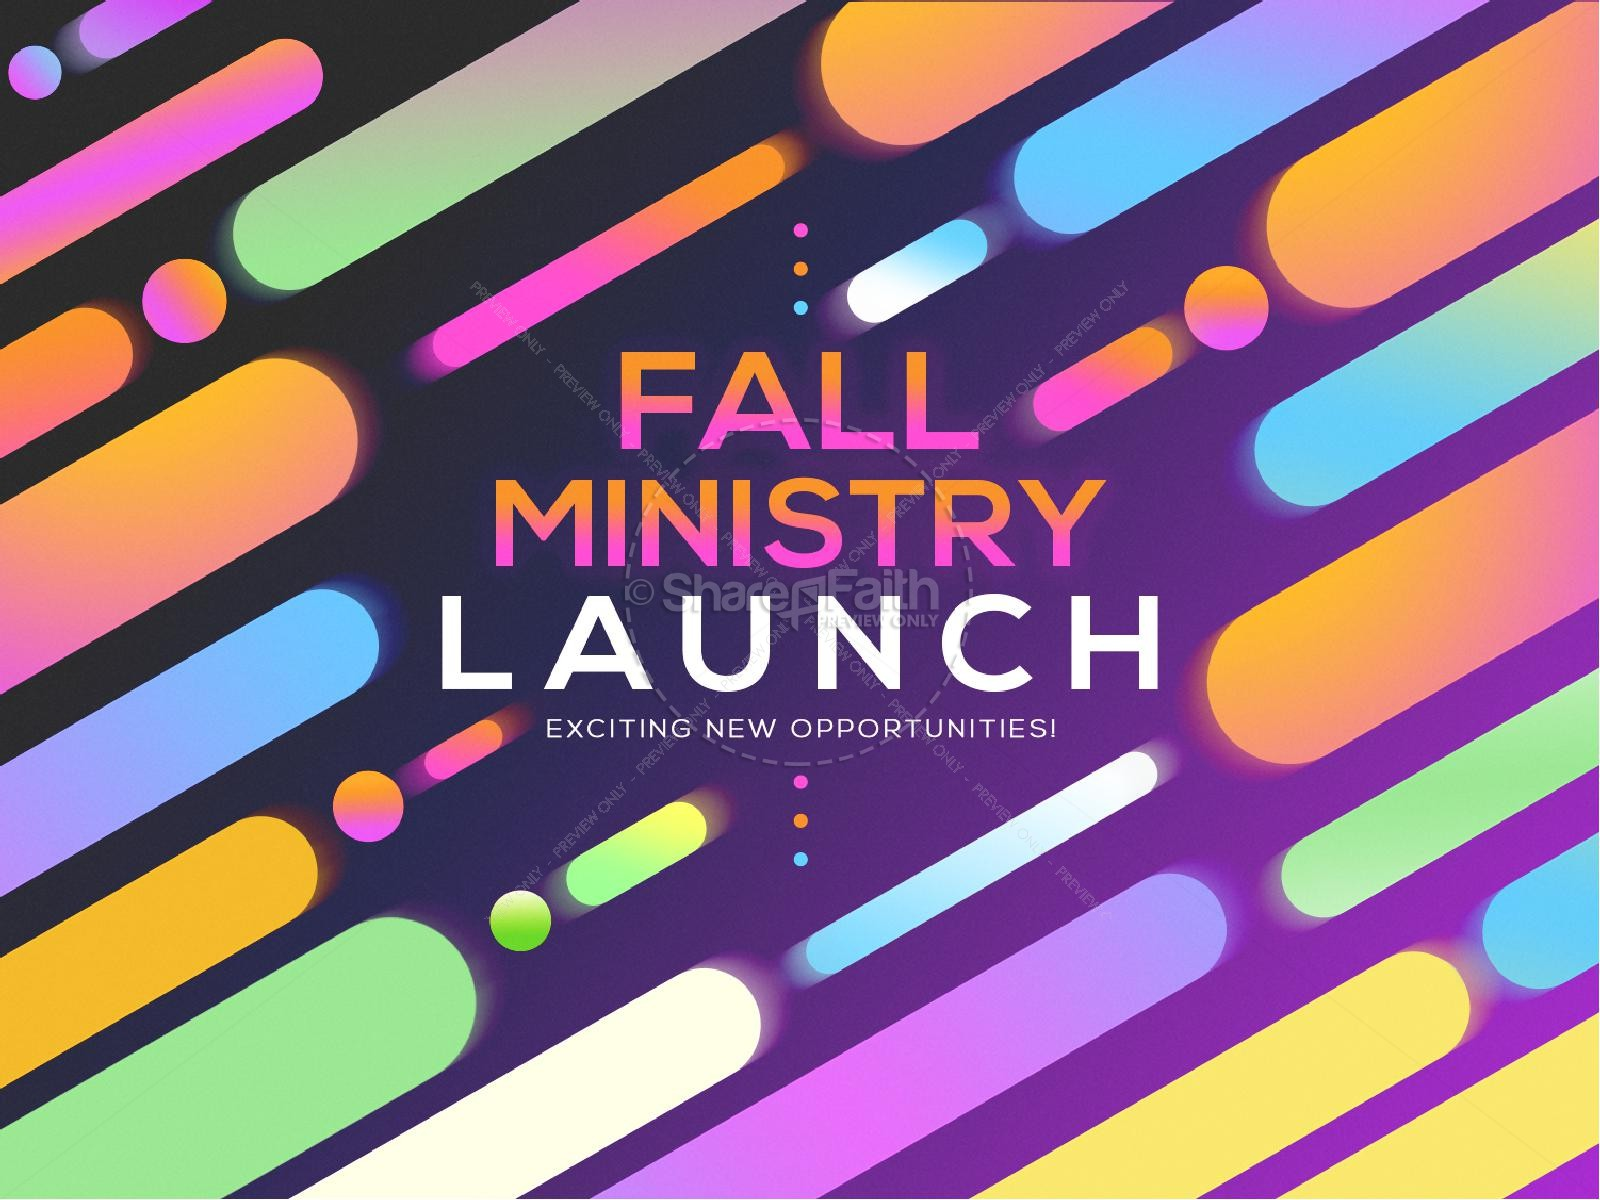 Fall Ministry Launch Church Graphic | slide 1